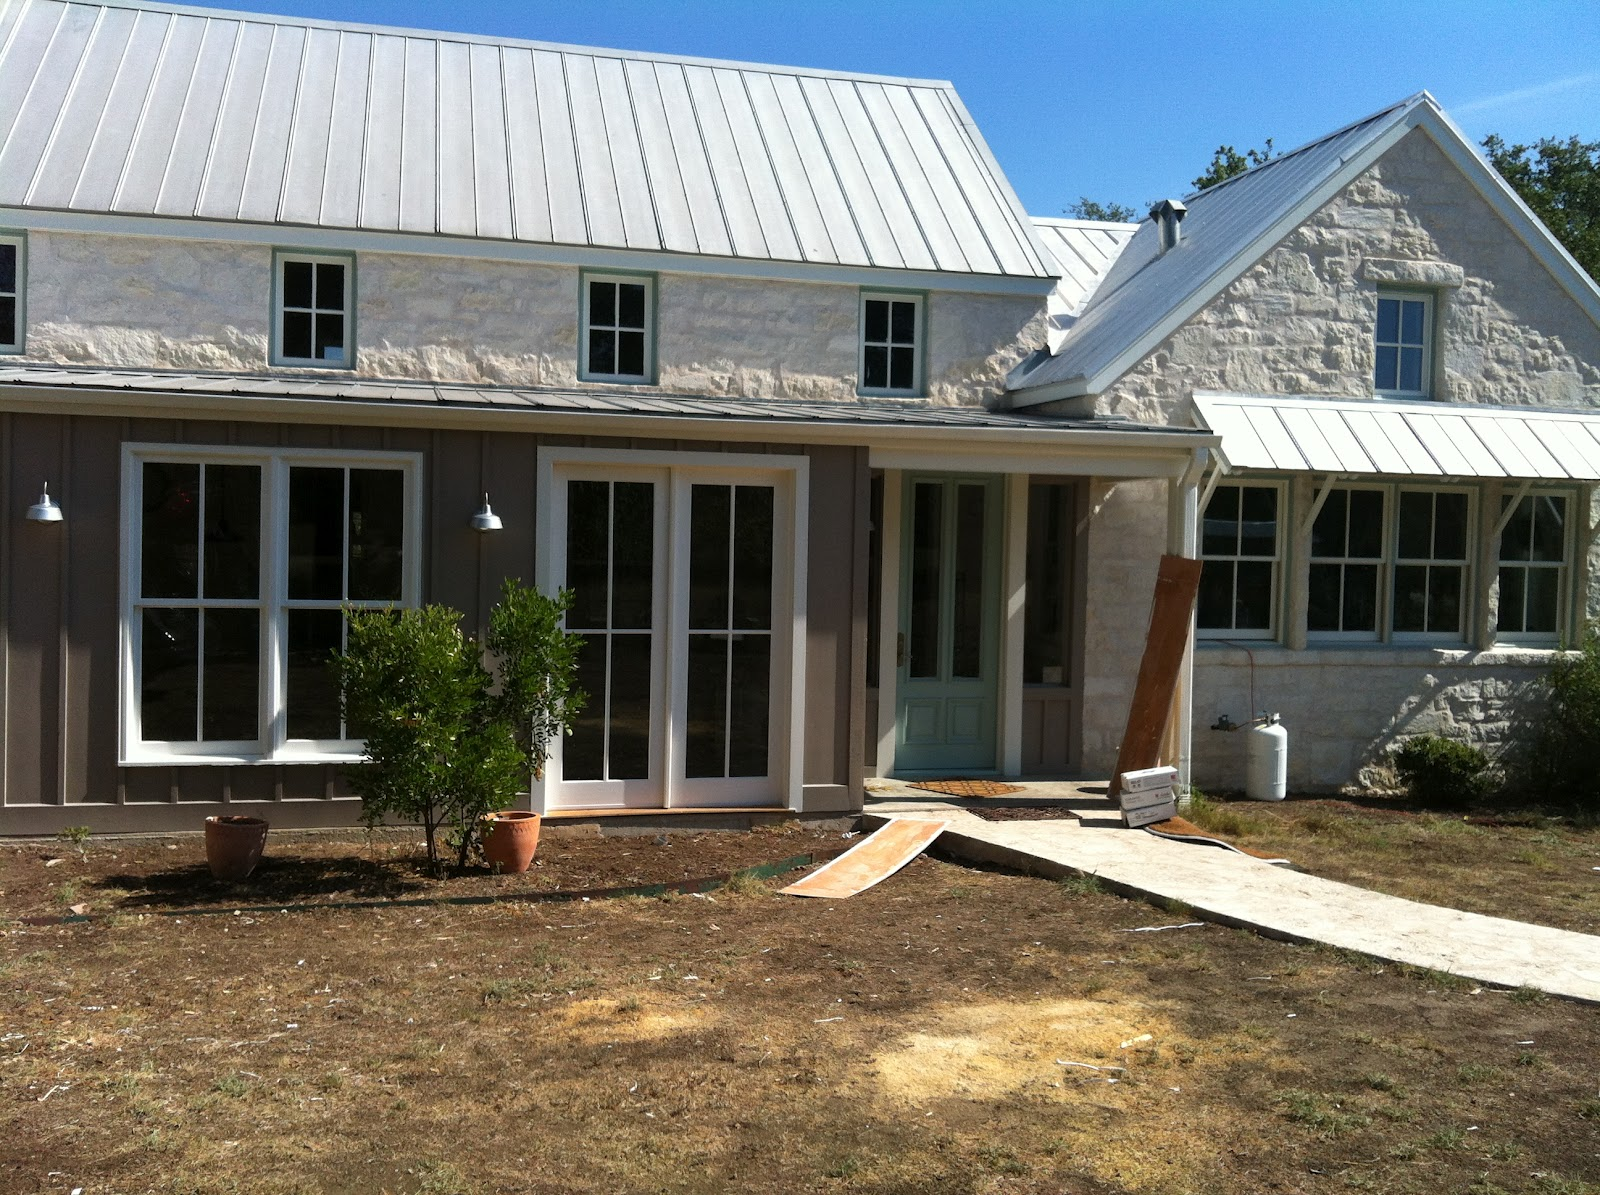 Jvw home project updates for Texas farmhouse plans